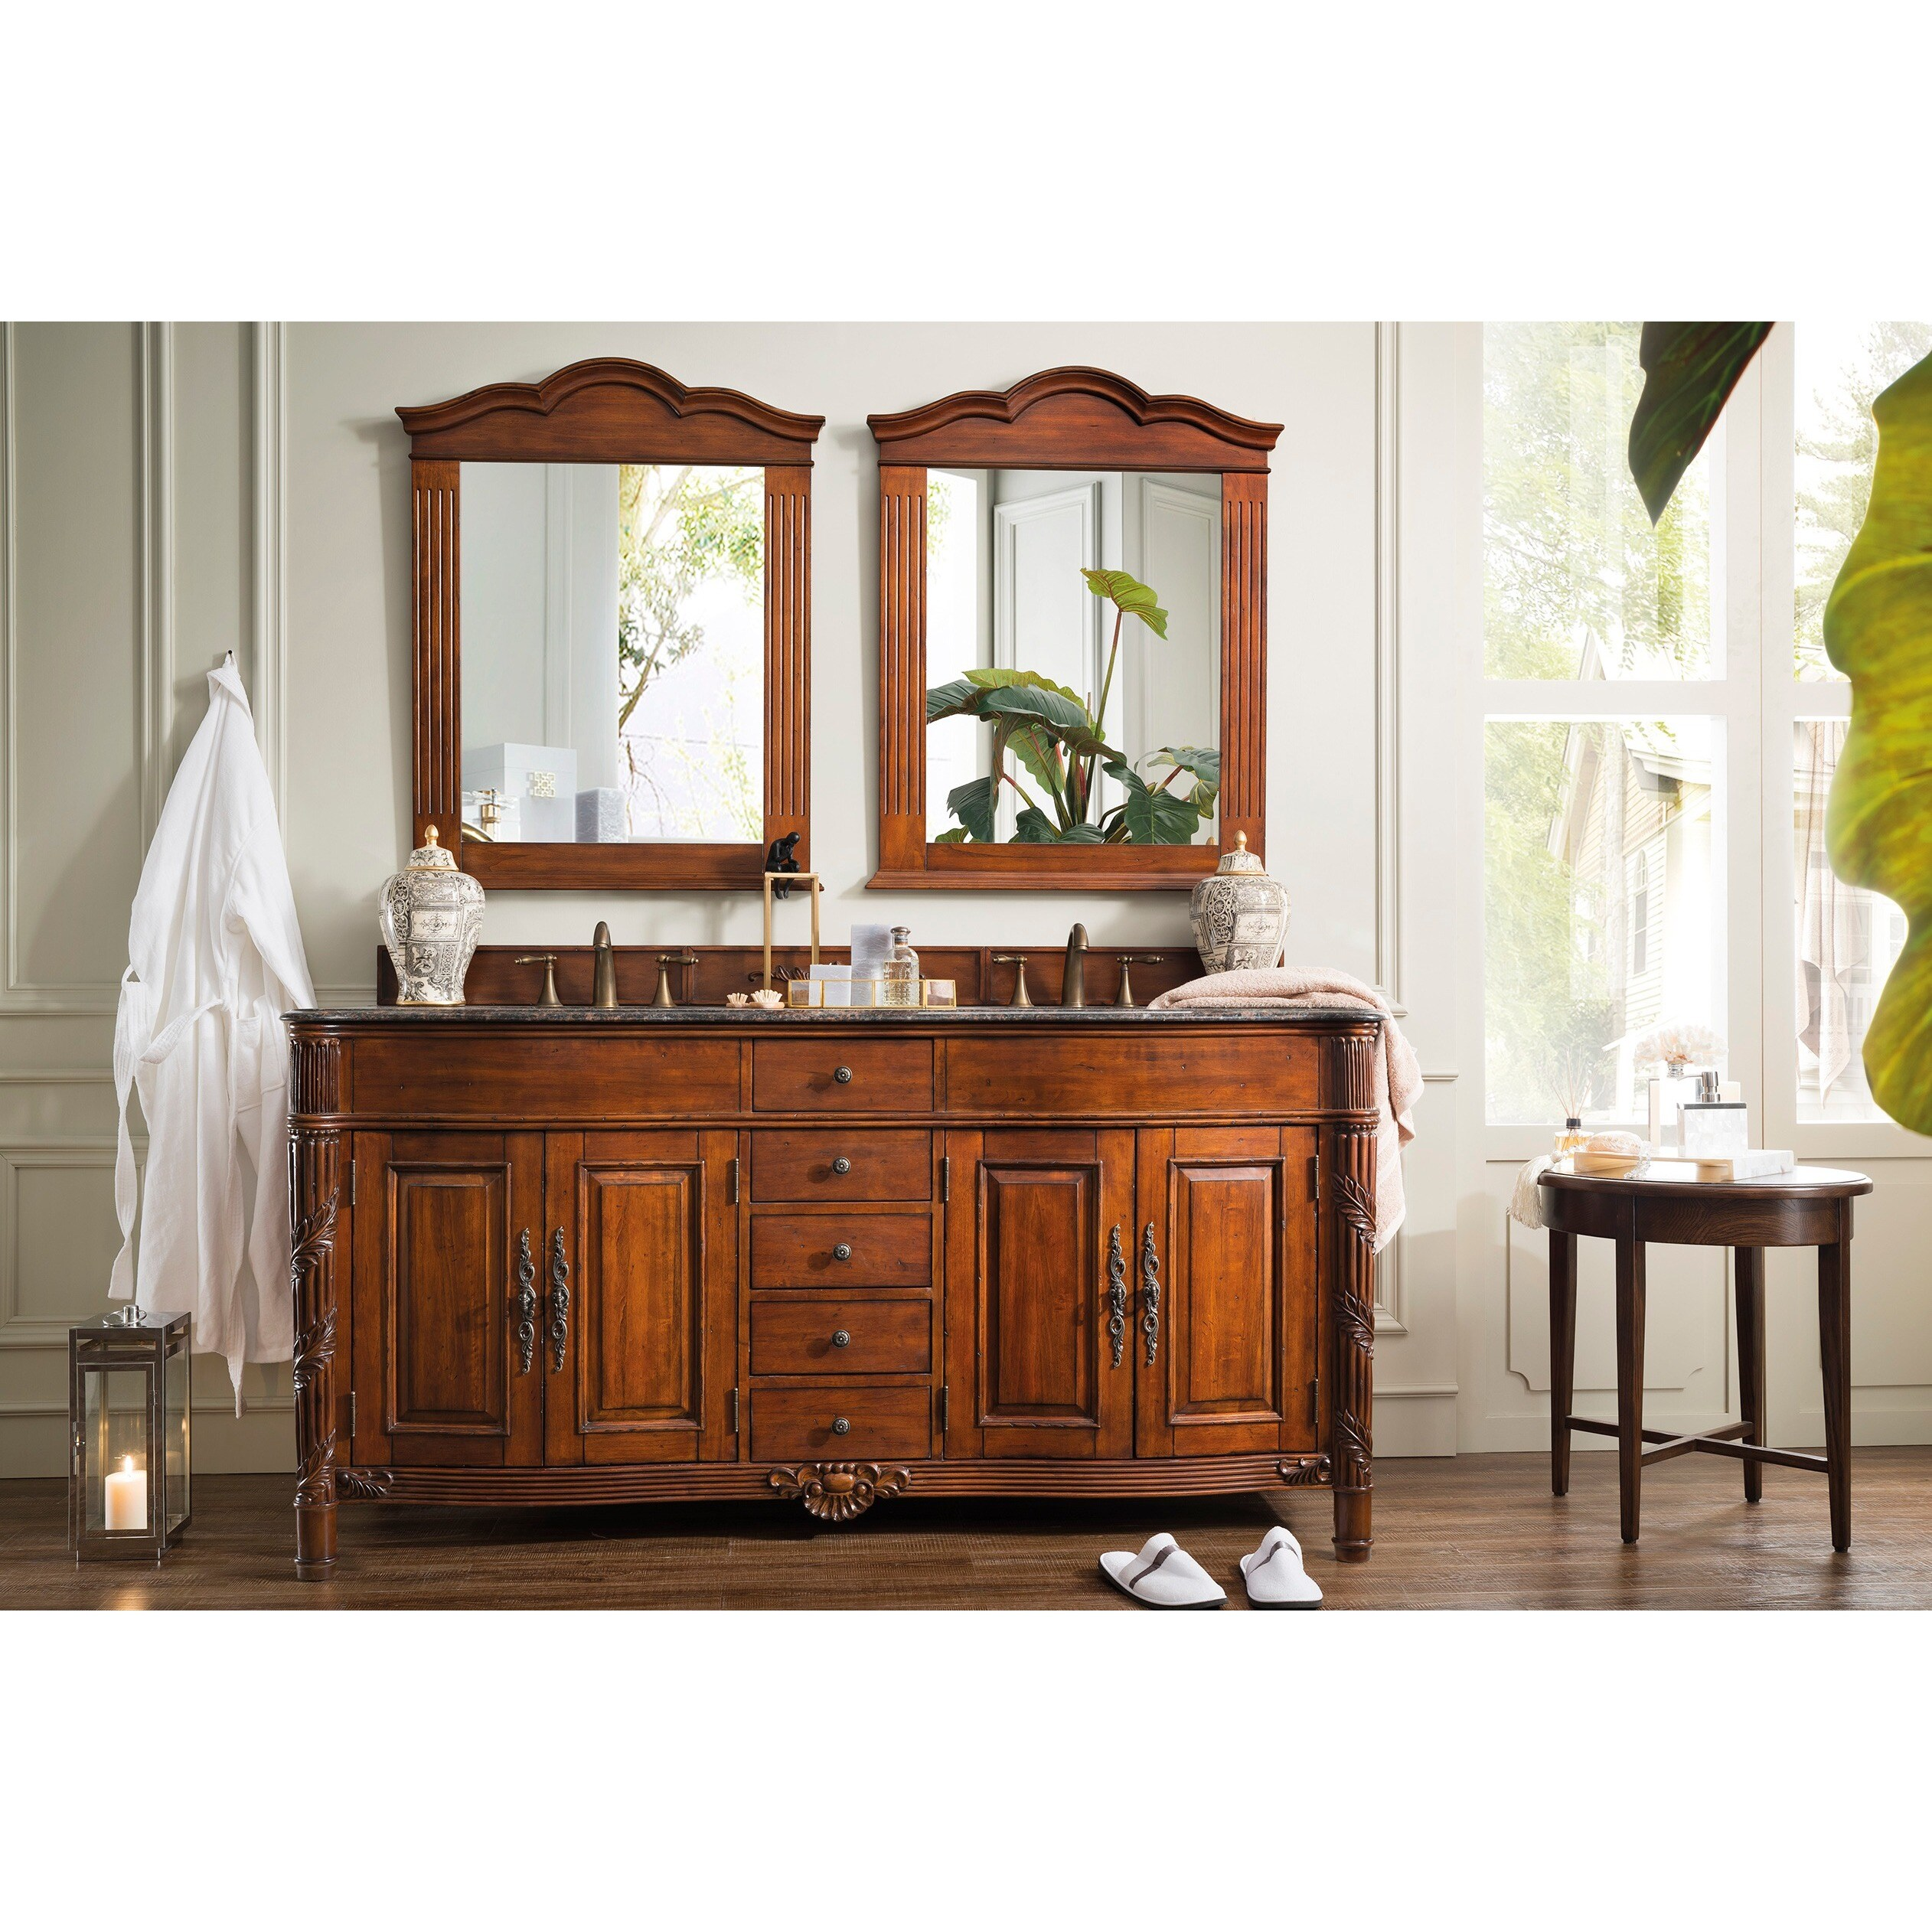 Overstock.com James Martin Furniture Classico Cherry 72-inch Double Granite Vanity Set at Sears.com